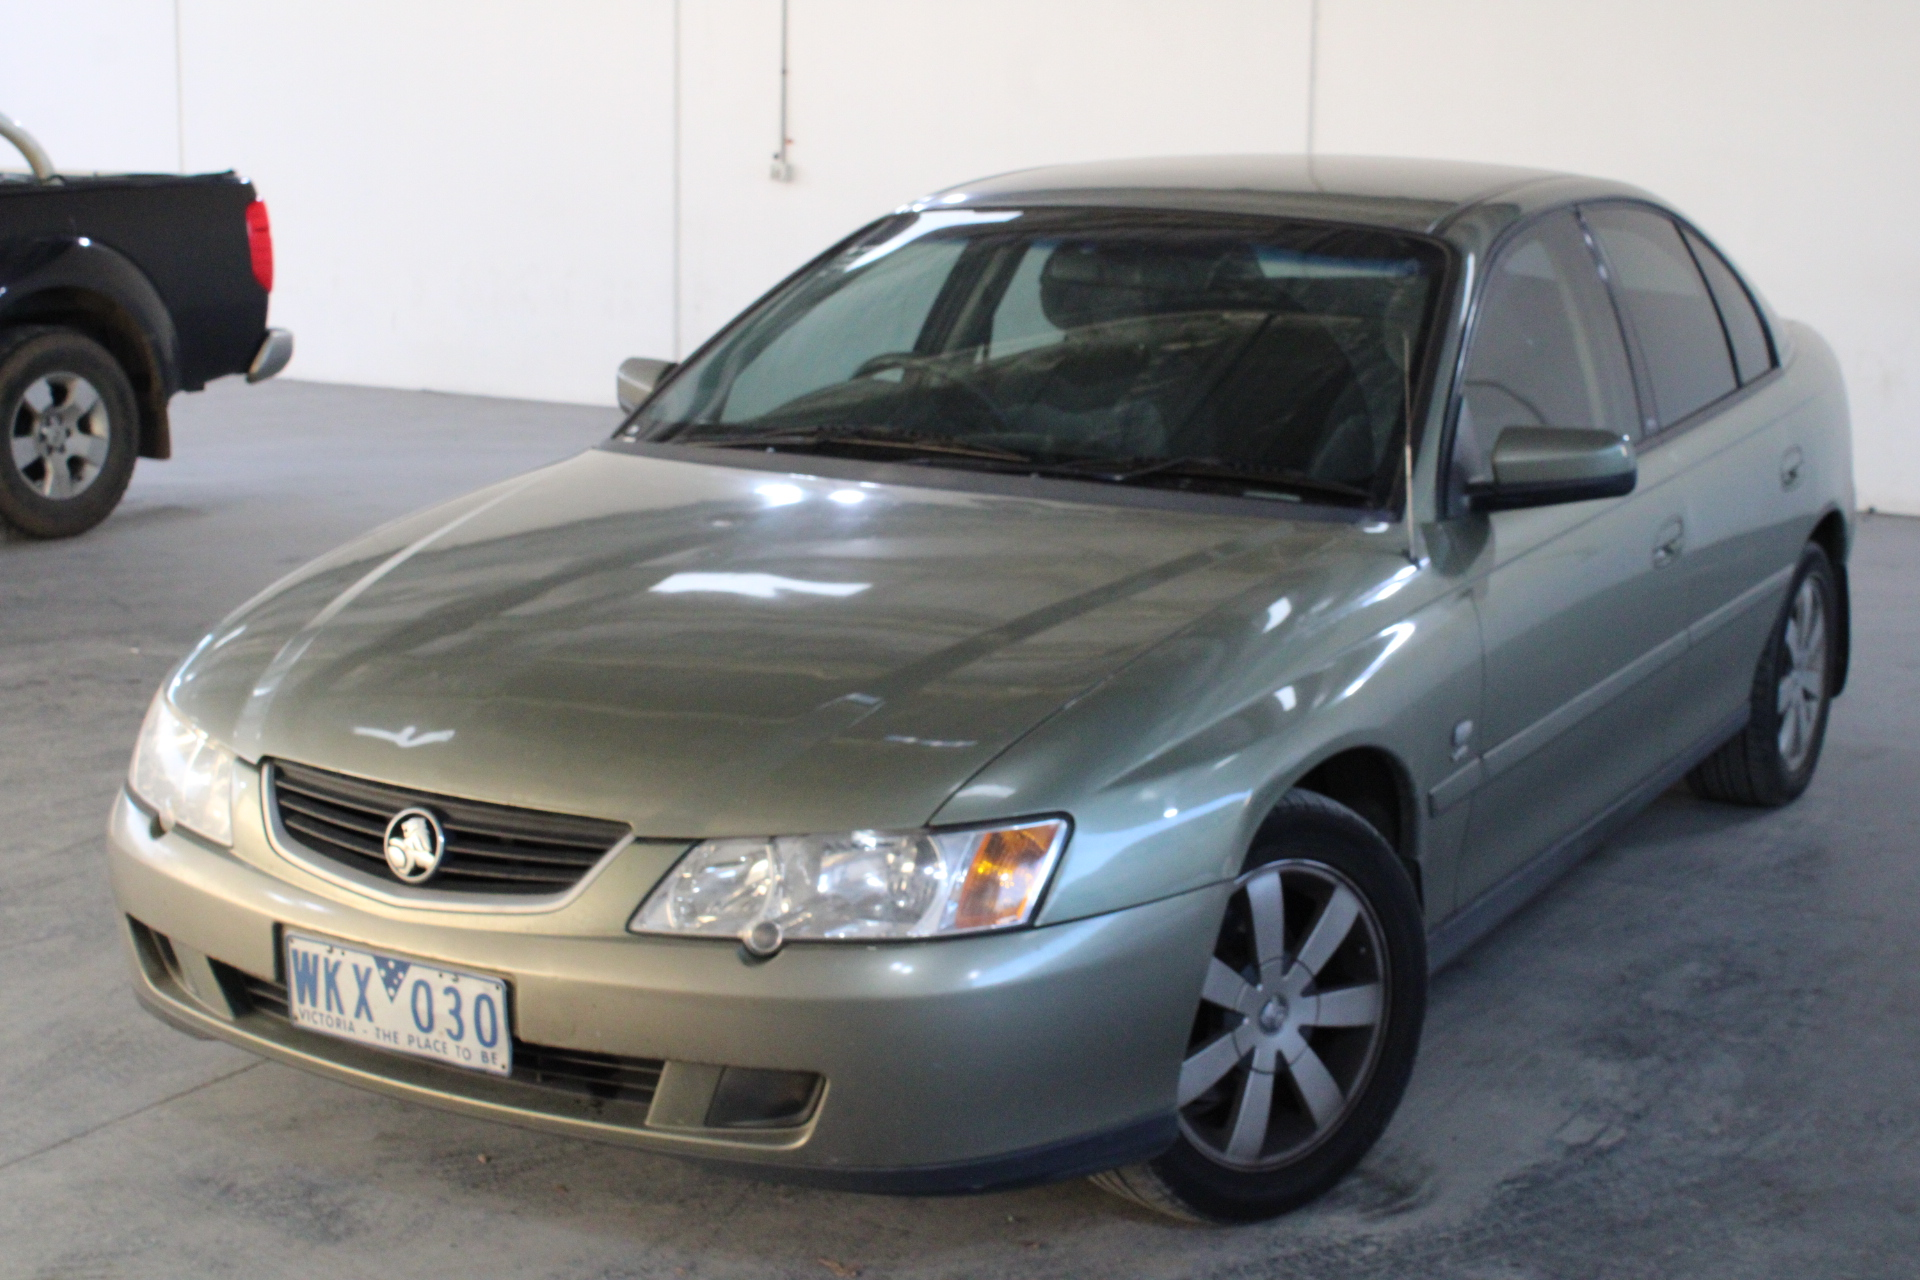 2004 Holden Commodore Equipe Series 2 Y Series Automatic Sedan